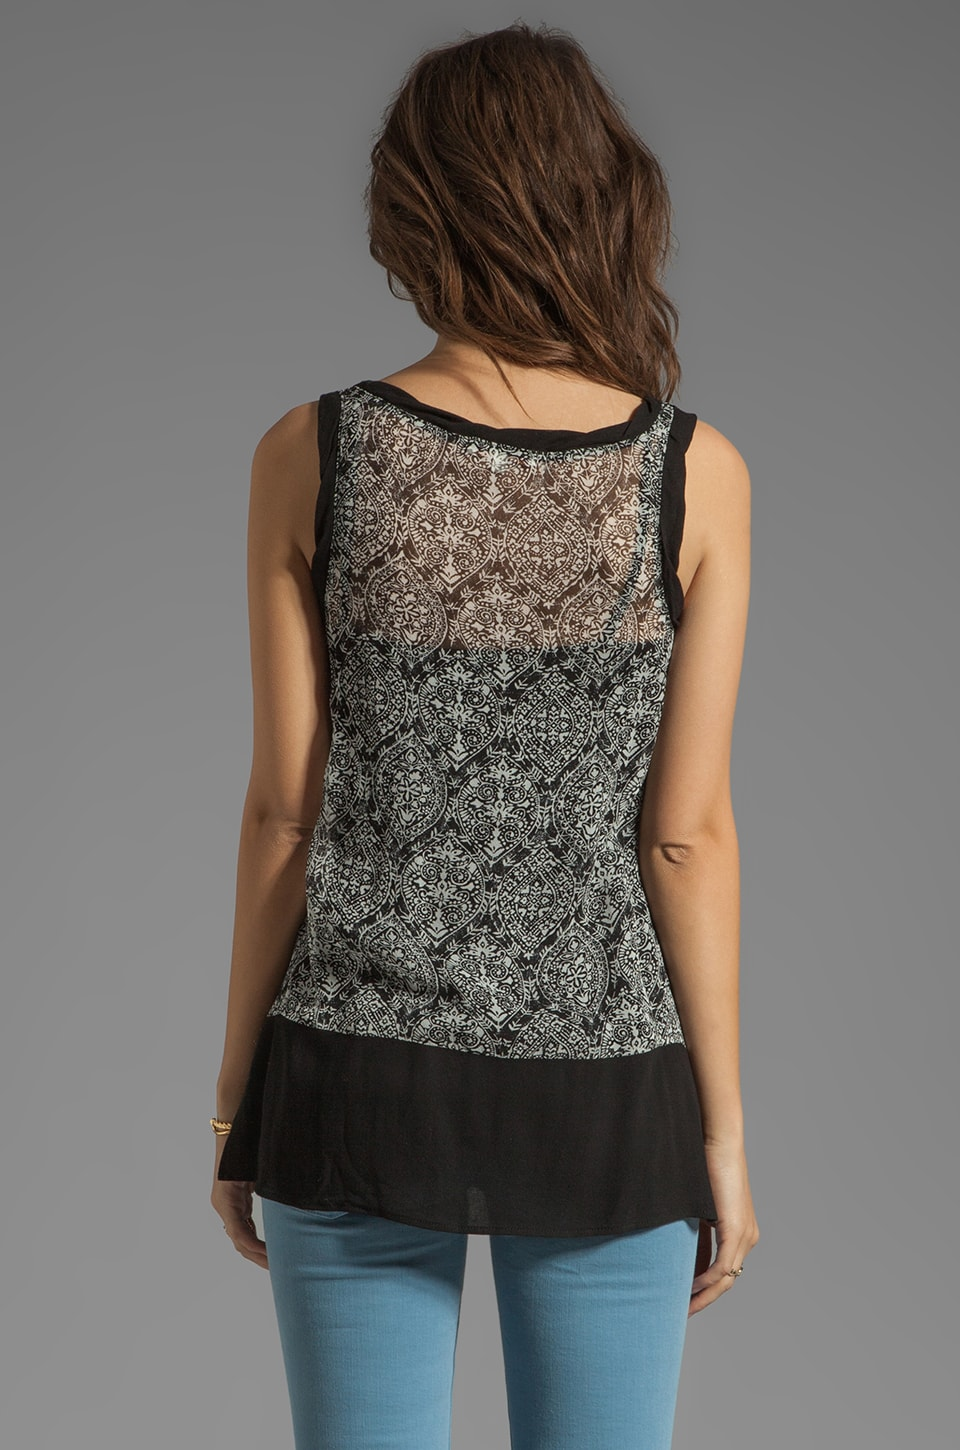 Ella Moss Cisco Tank in Black